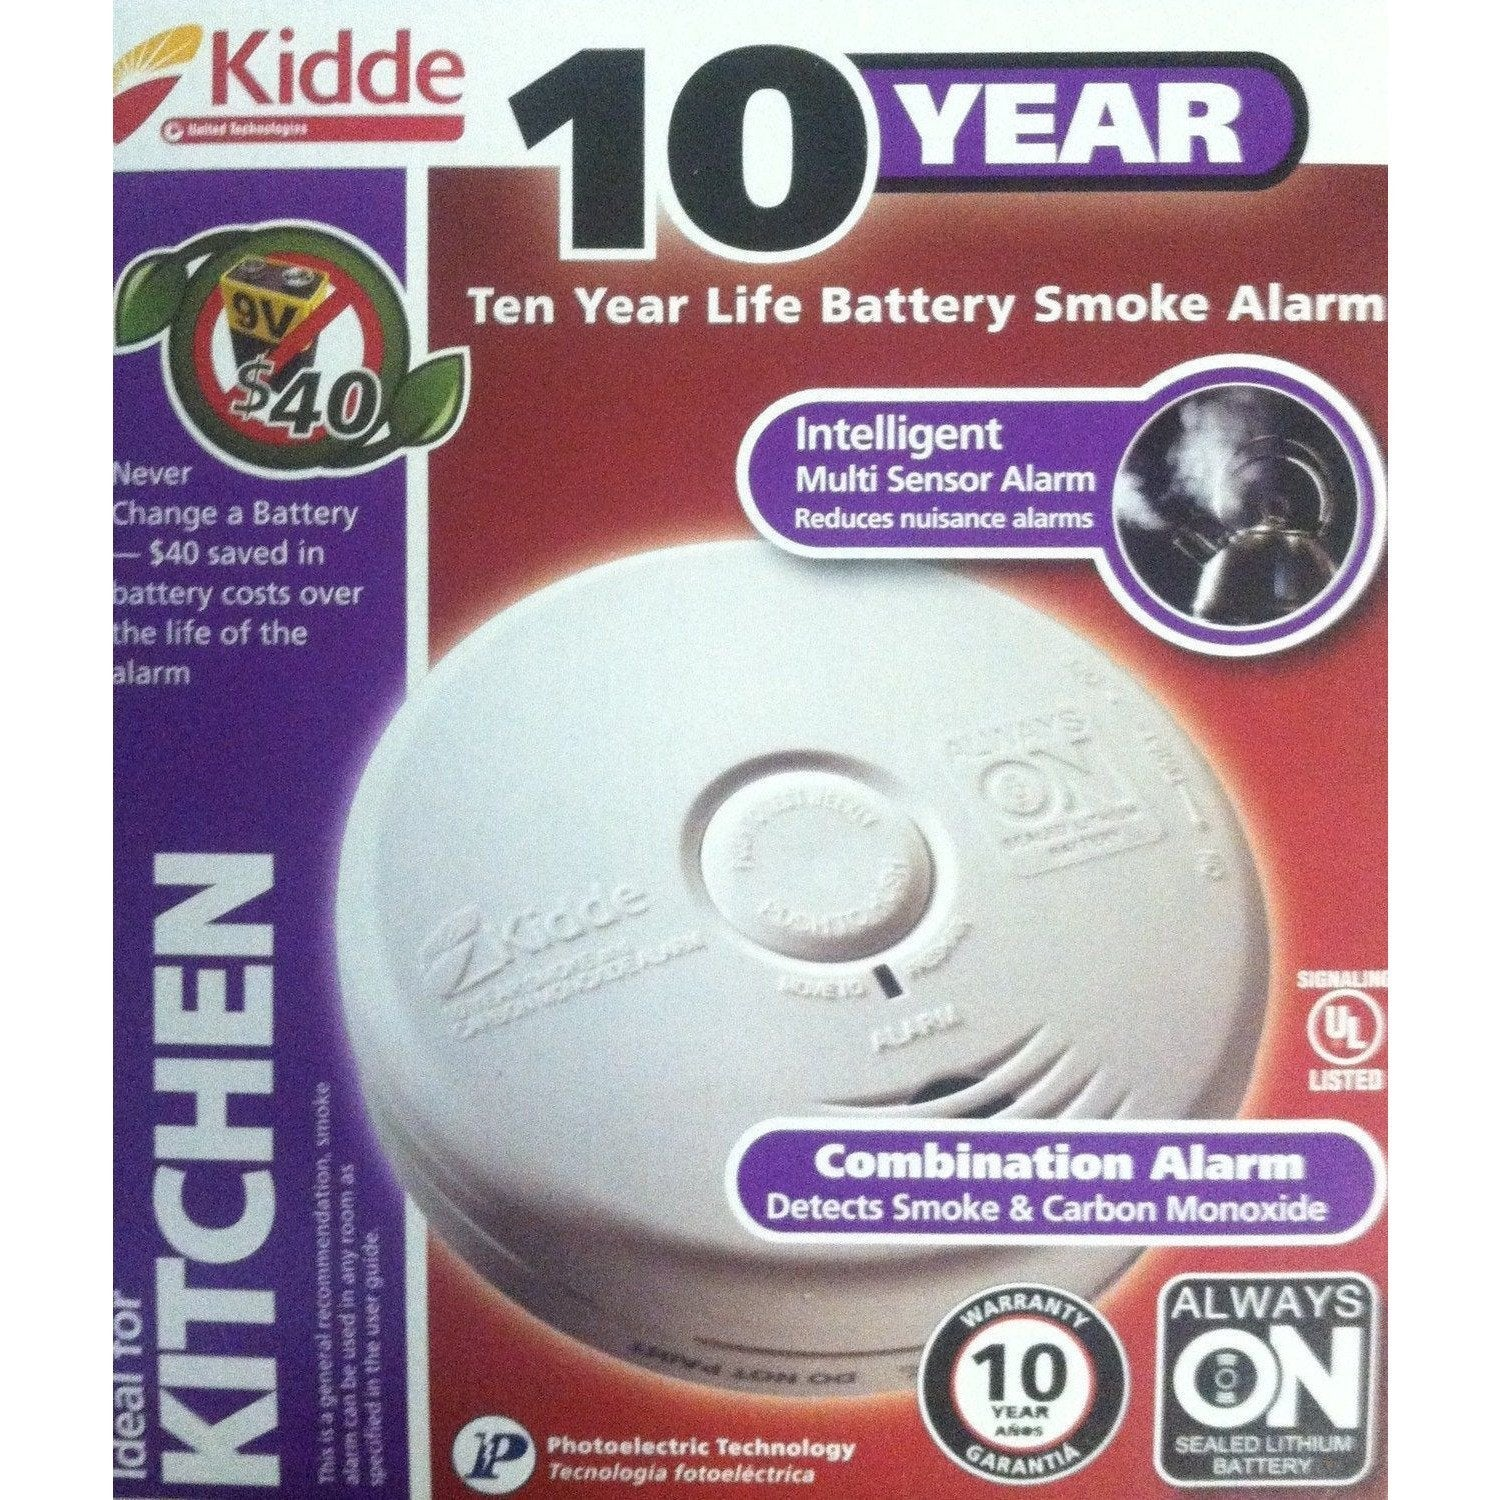 Kidde 10-Year Sealed Battery Smoke /& Carbon Monoxide Combination Detector